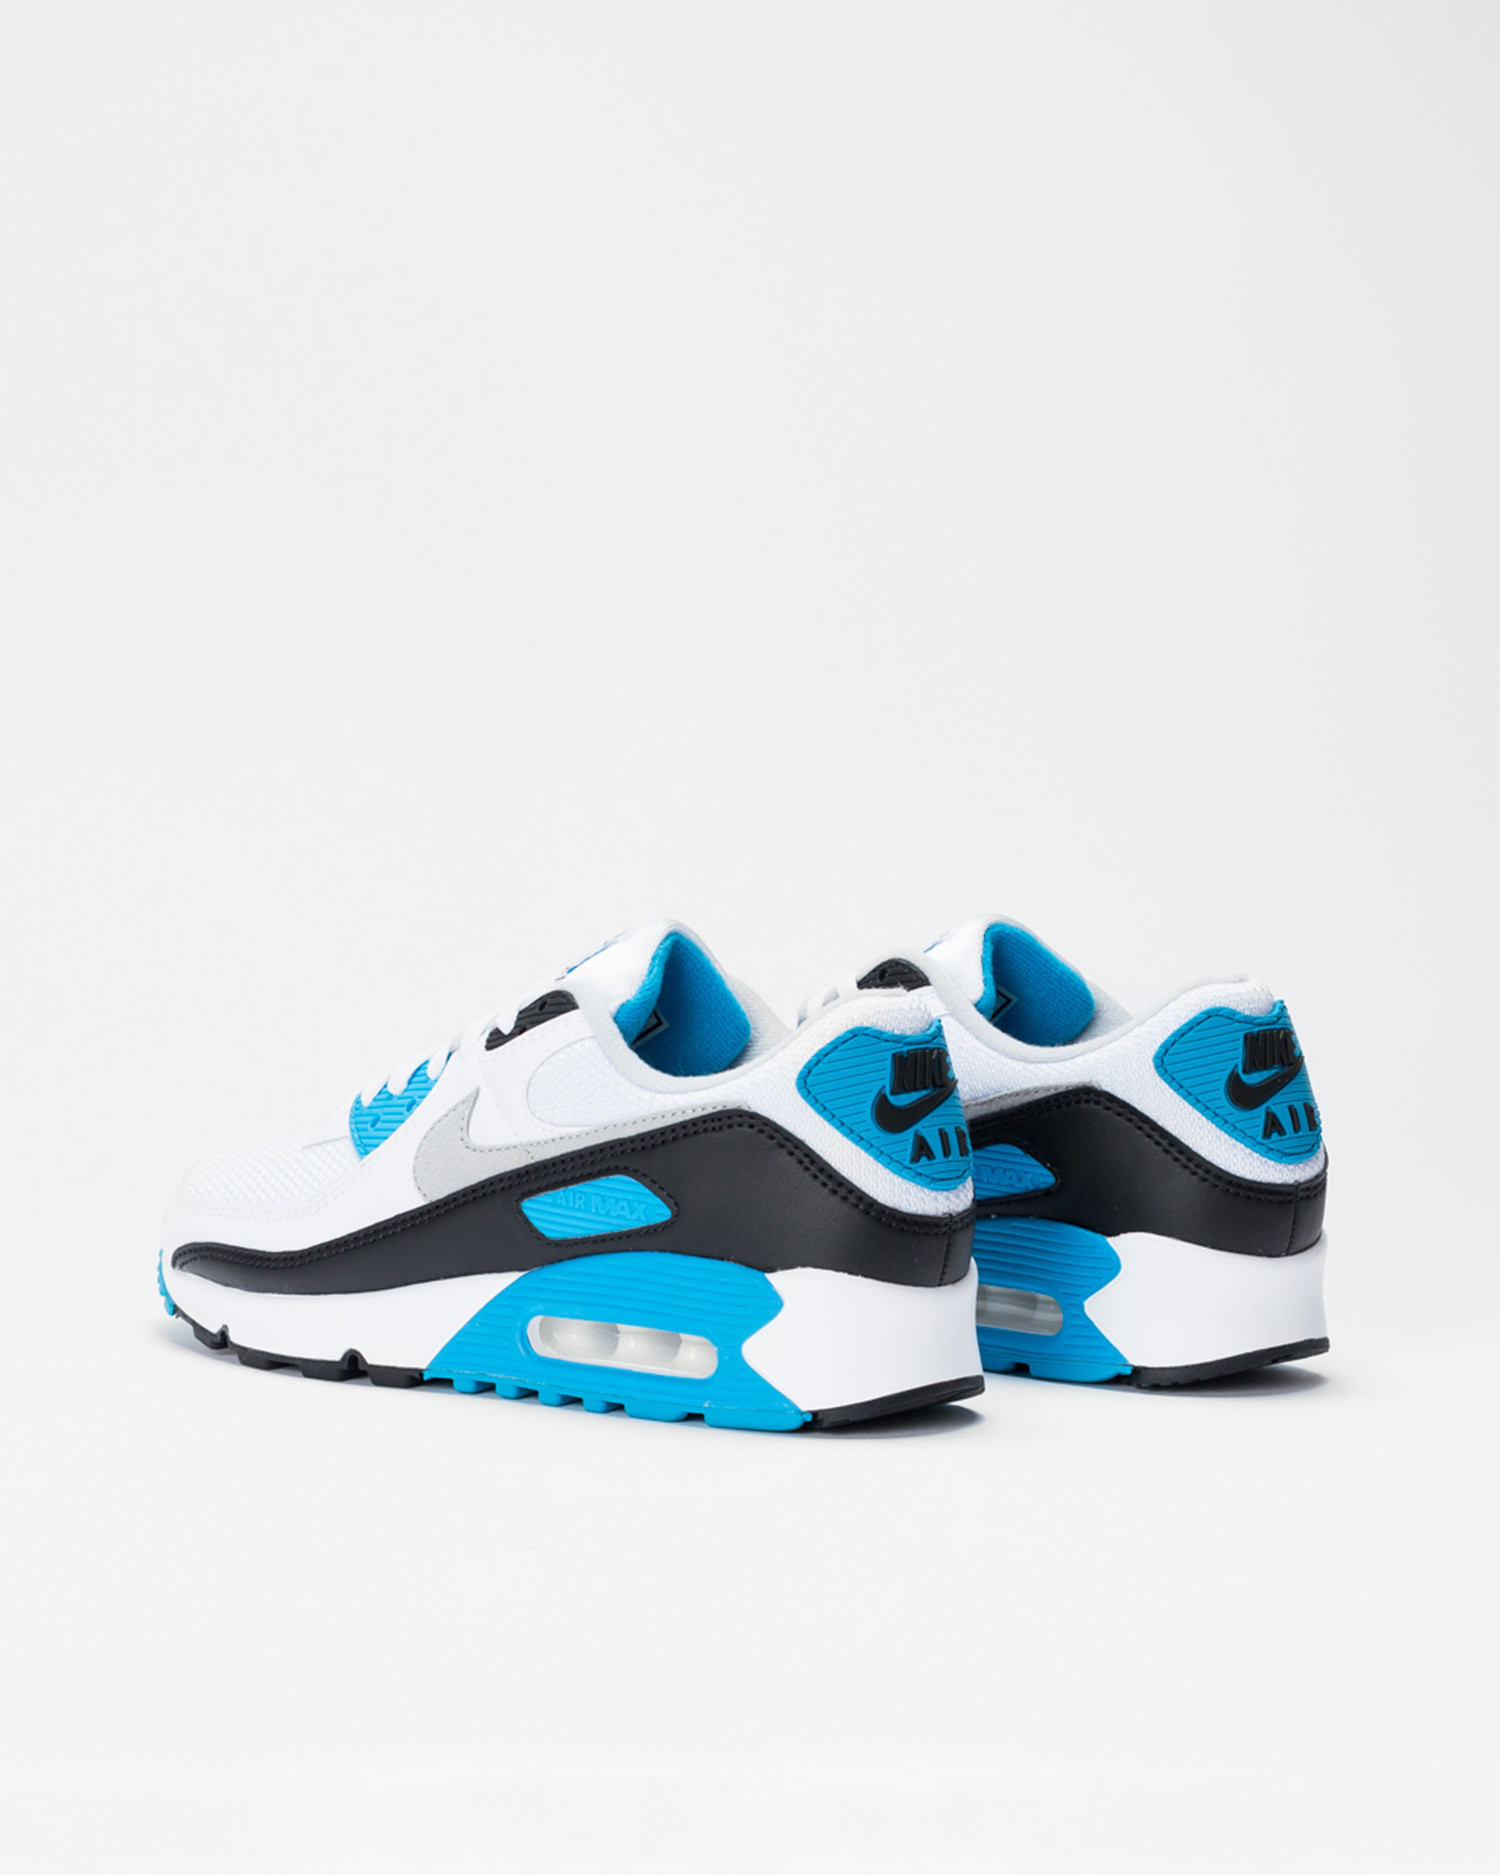 Nike Air Max III White/black-grey fog-laser blue